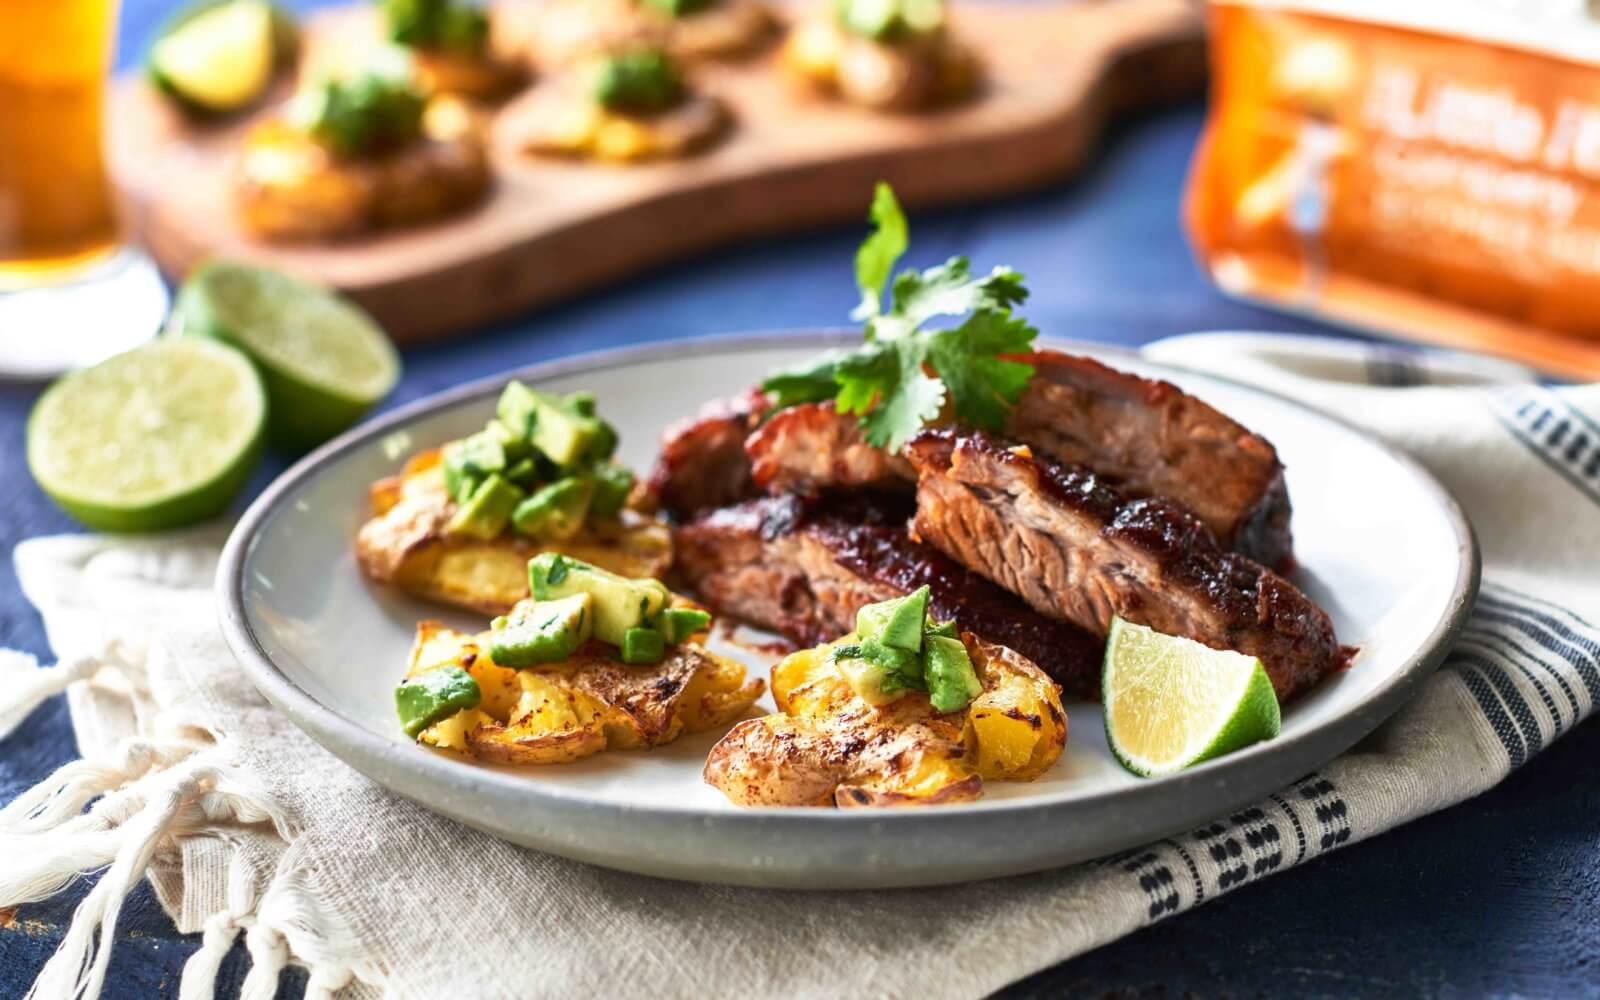 Michael's Mexican Chili Lime Smashed Potatoes